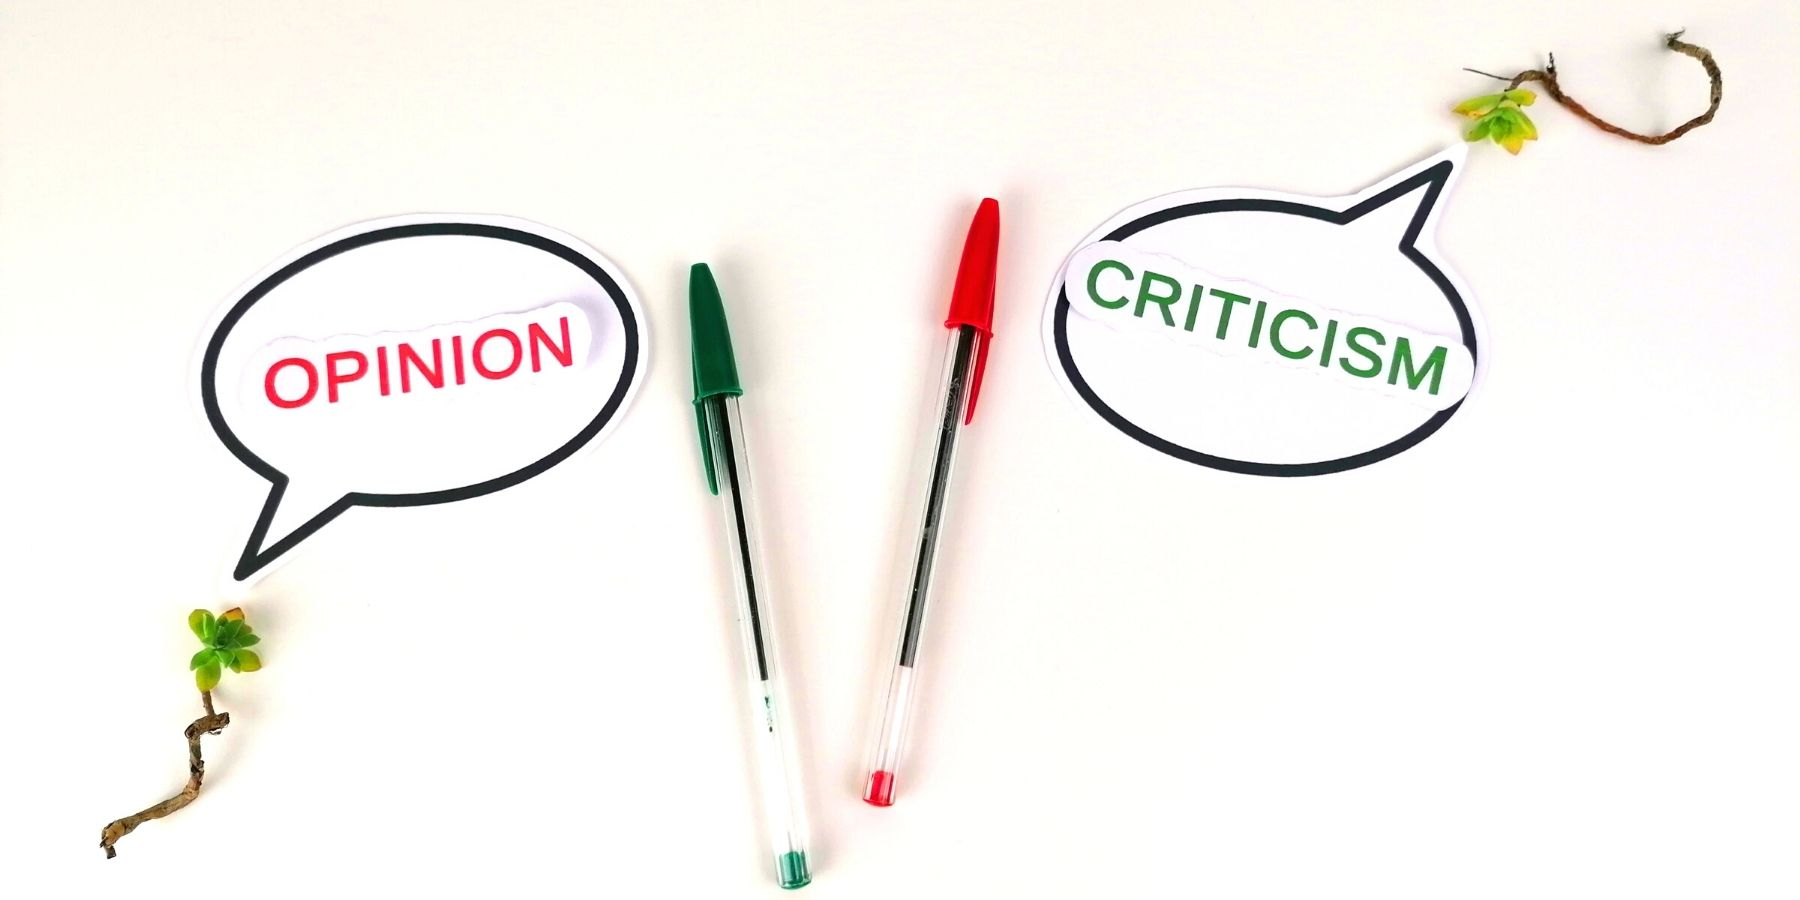 opinion and criticism